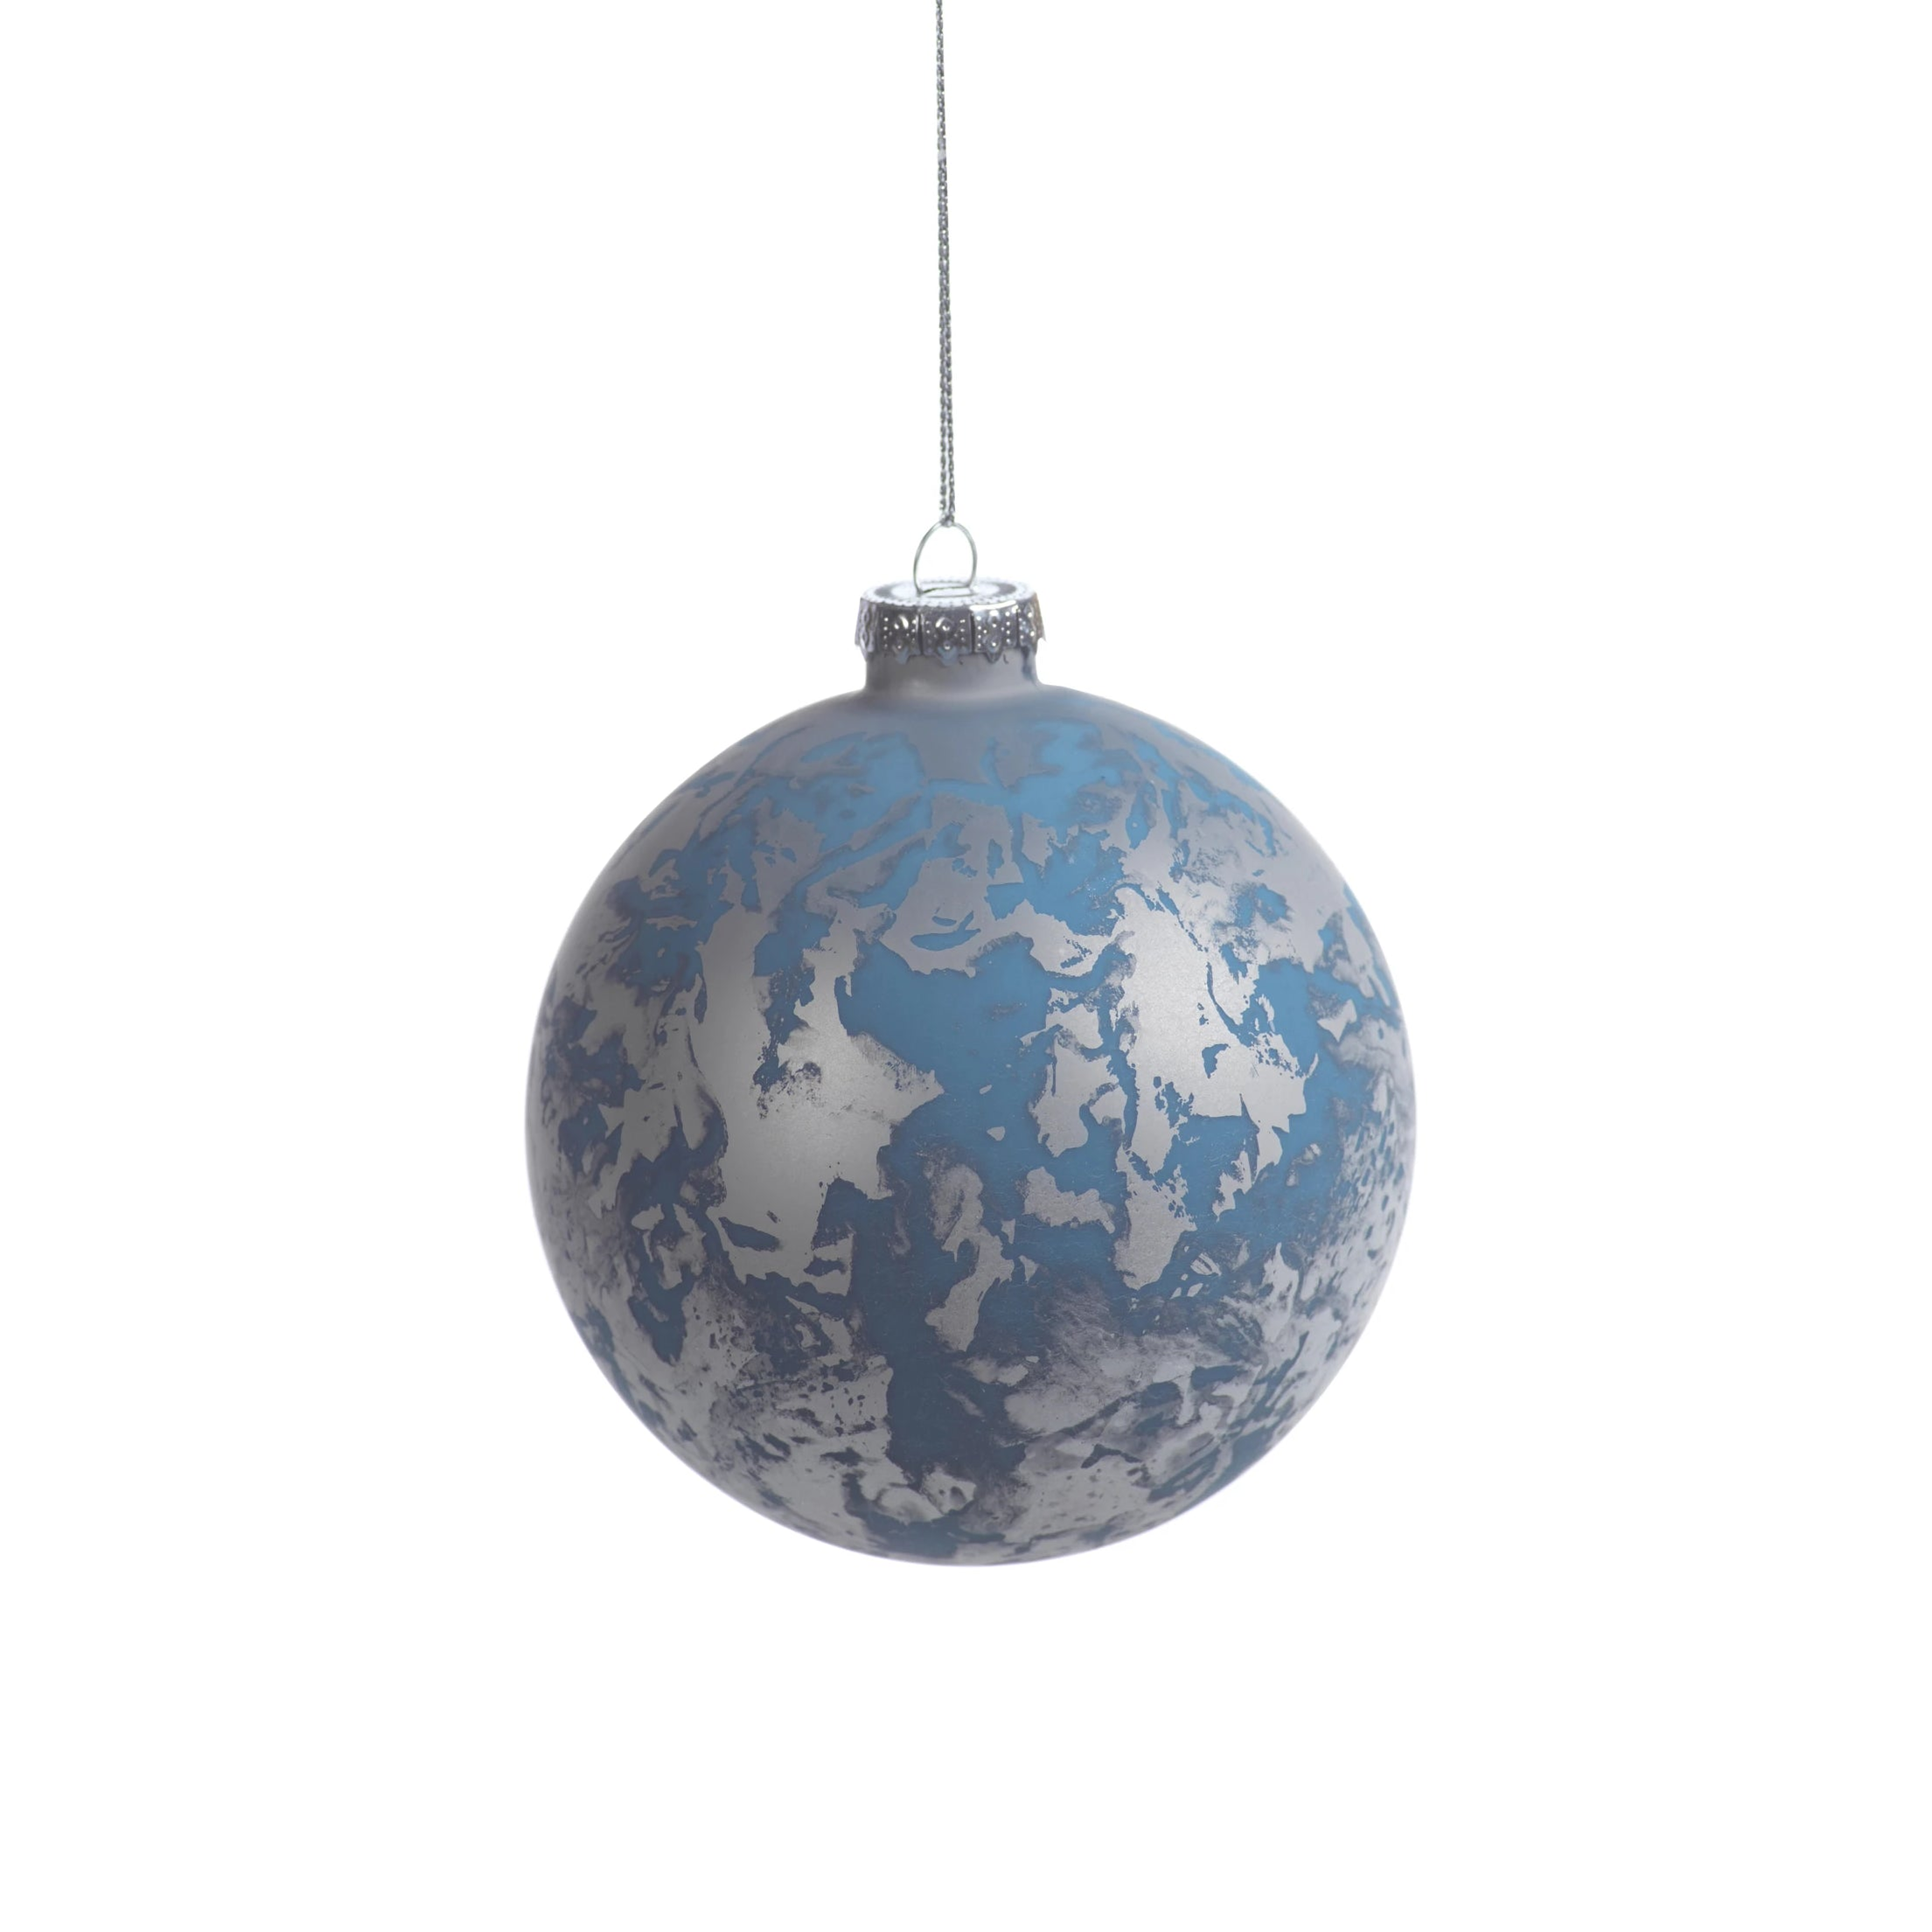 Patch Metallic Ornament - Silver& Blue